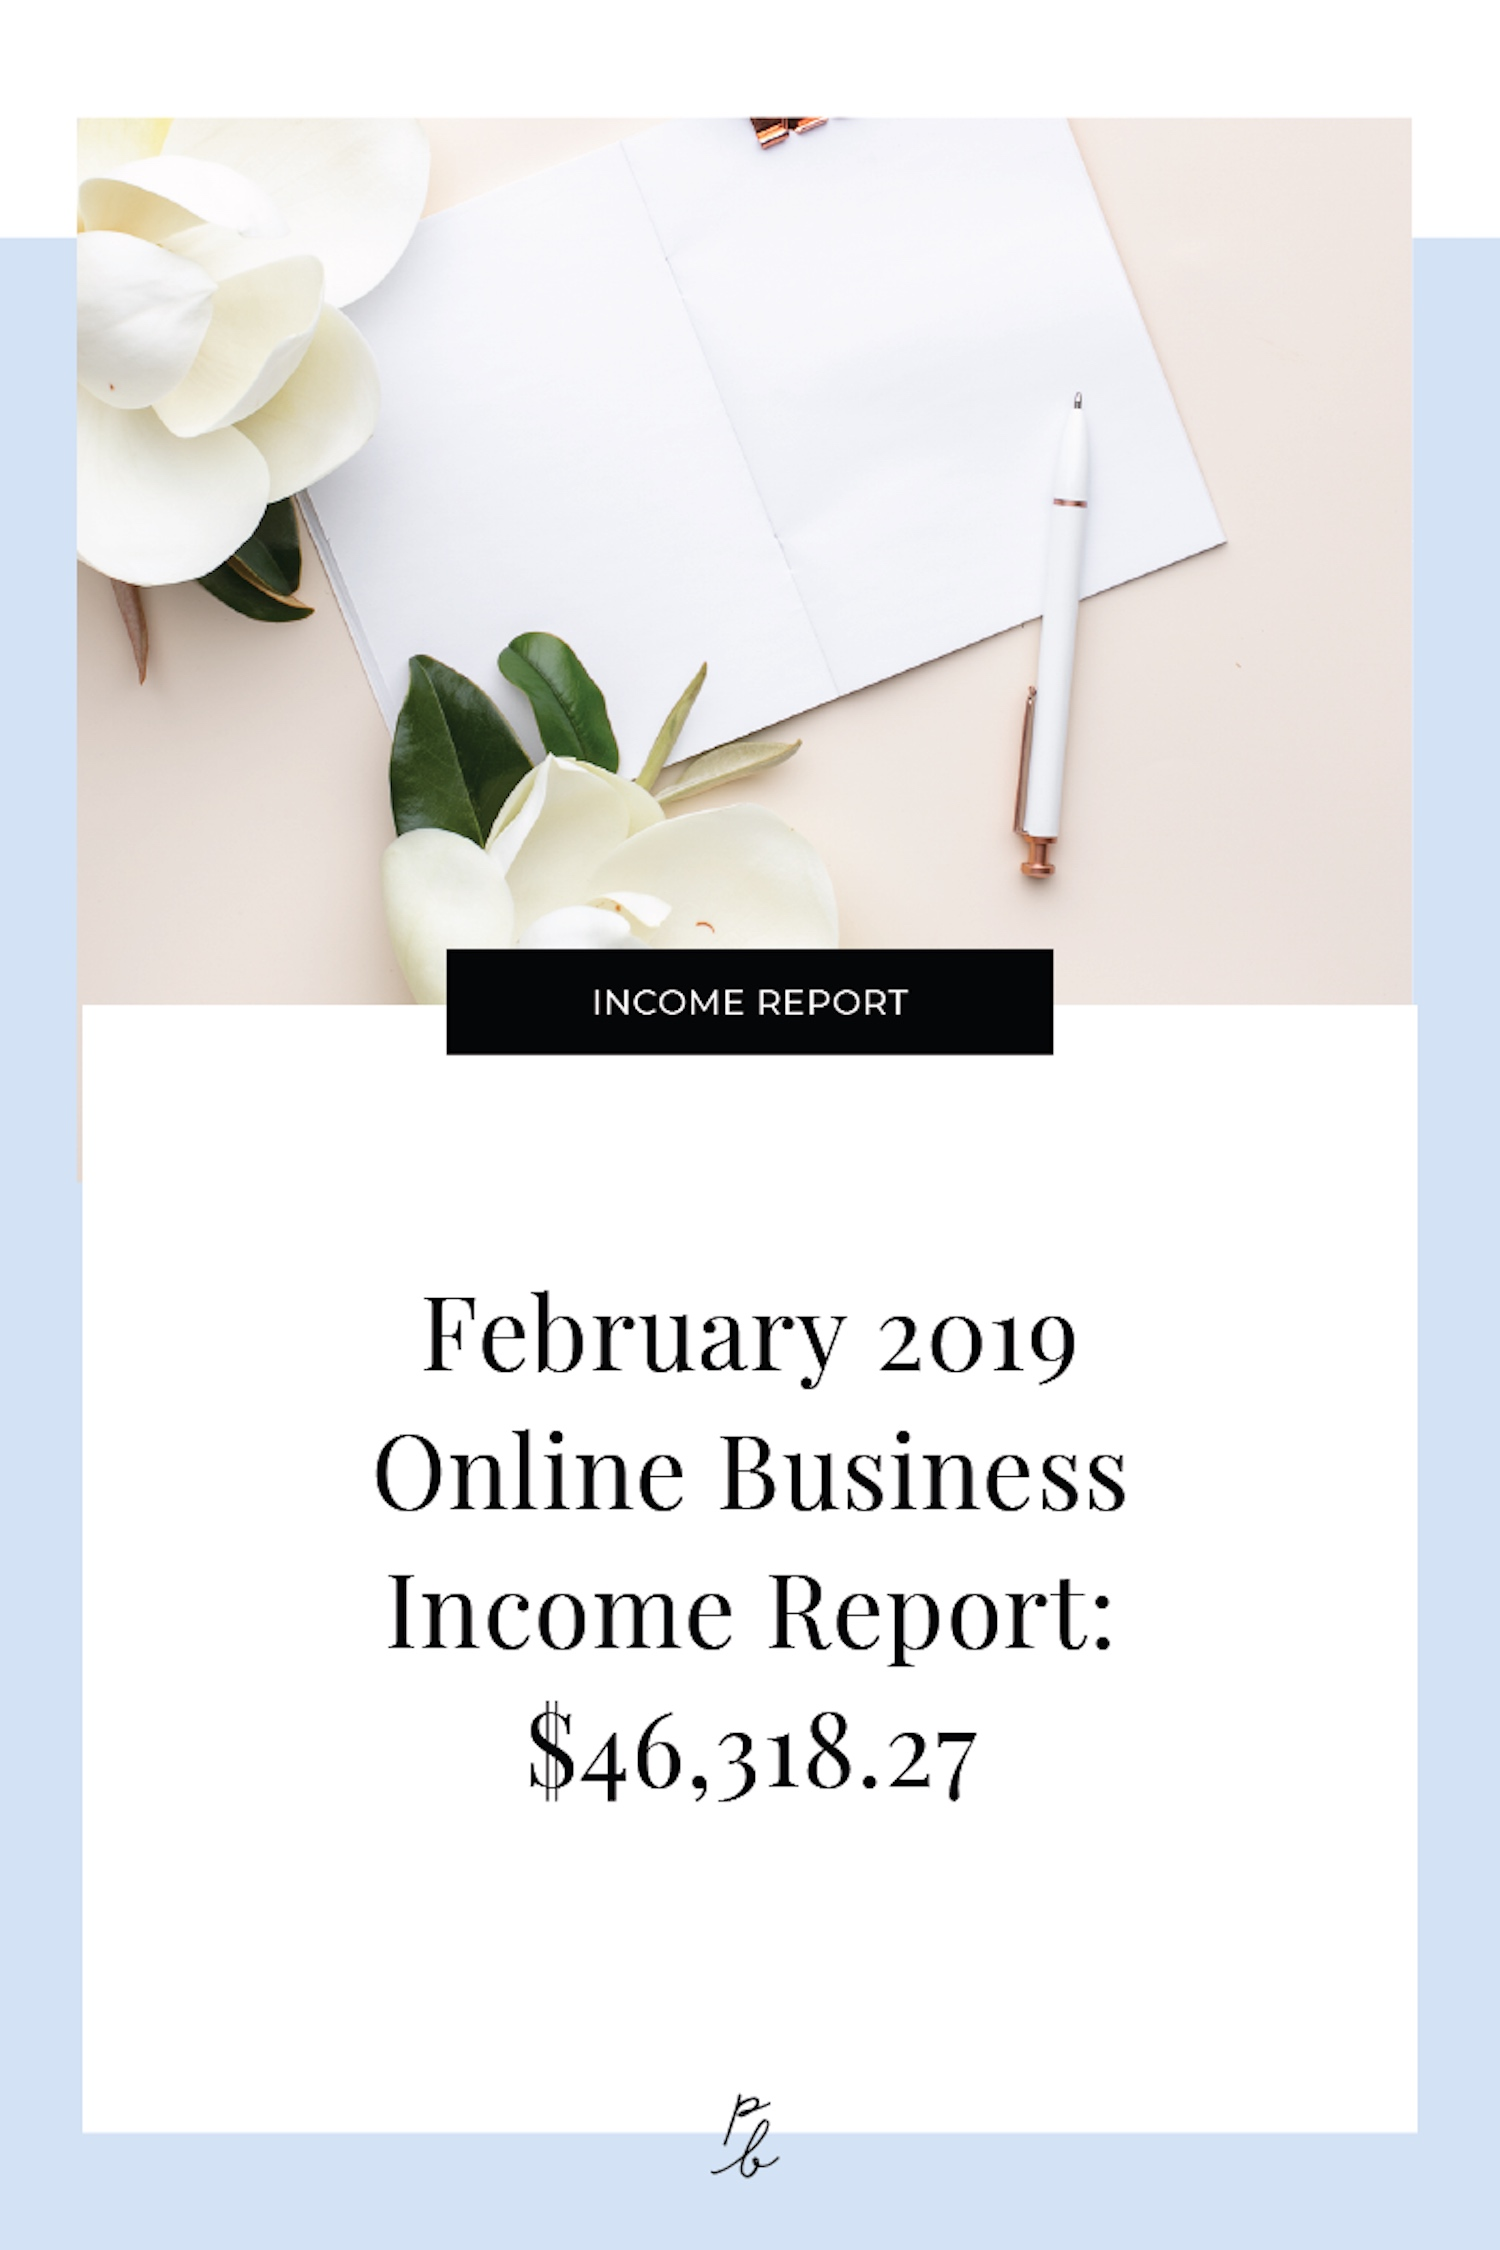 February 2019 Online Business Income Report.jpg